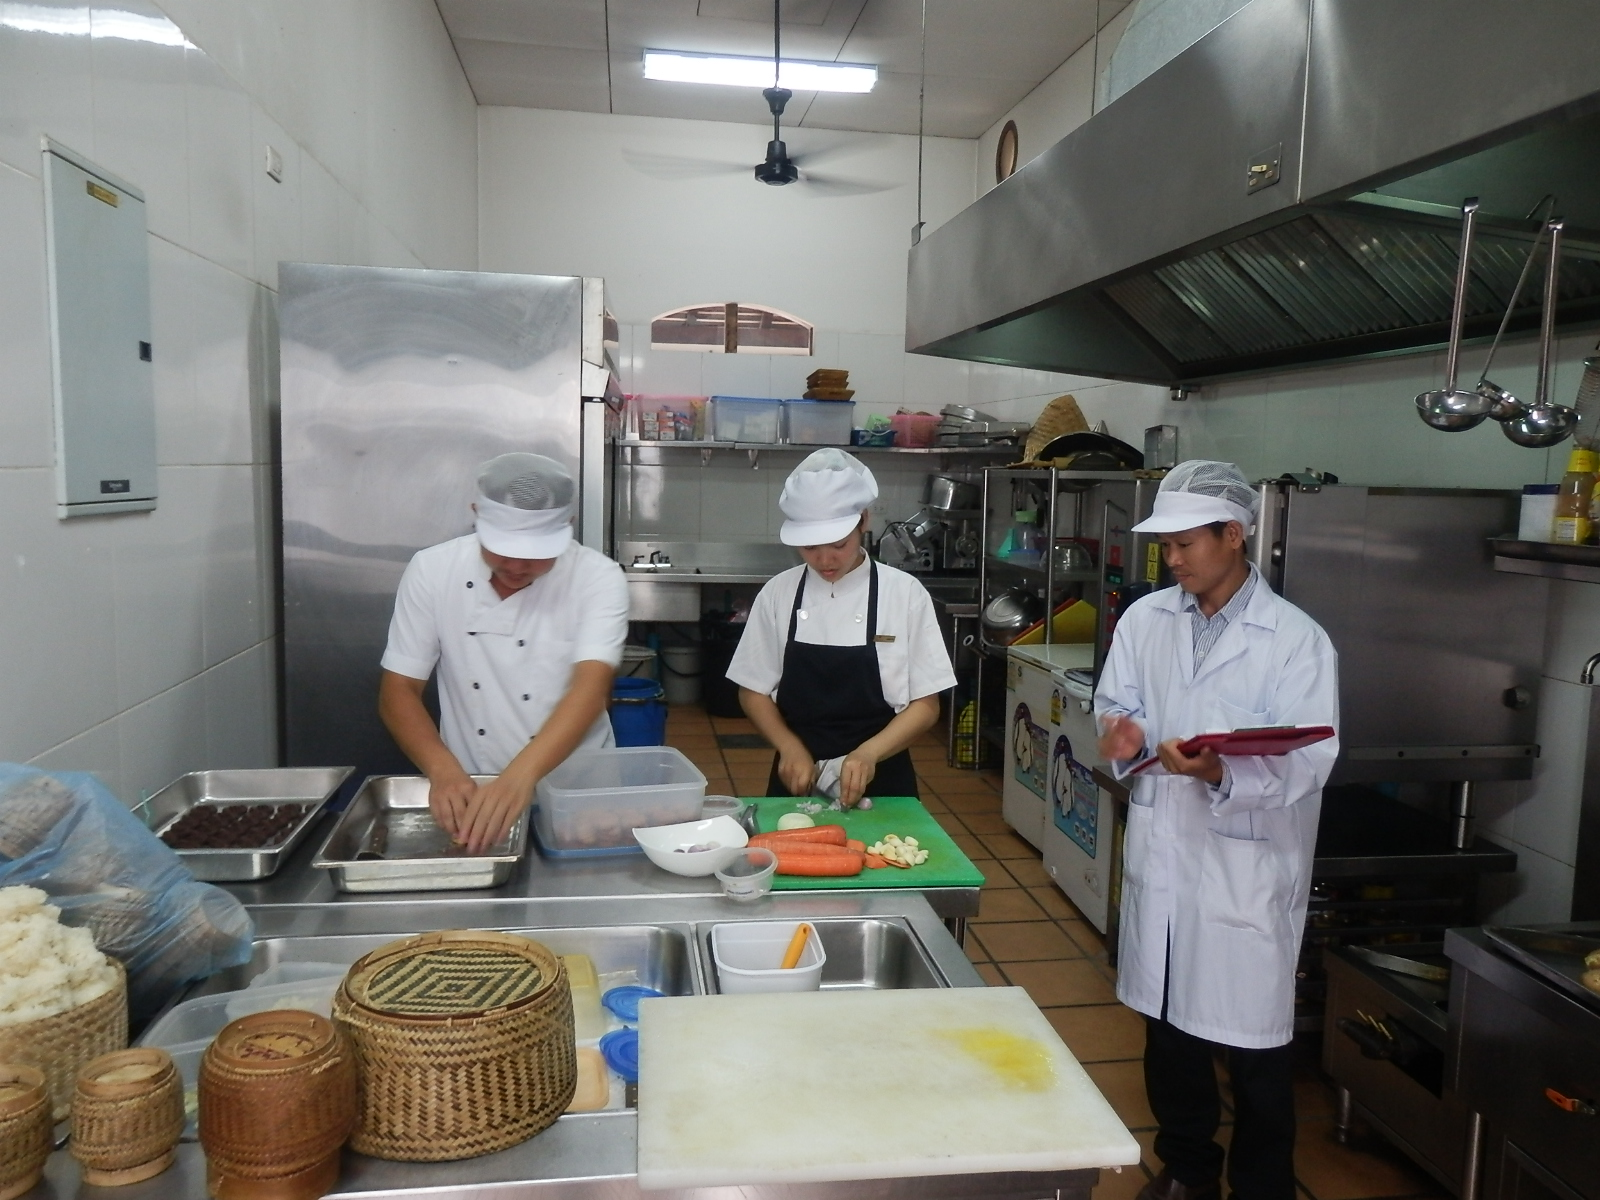 the-mark-luang-prabang-food-preparation-hygiene-certification-program-kitchen